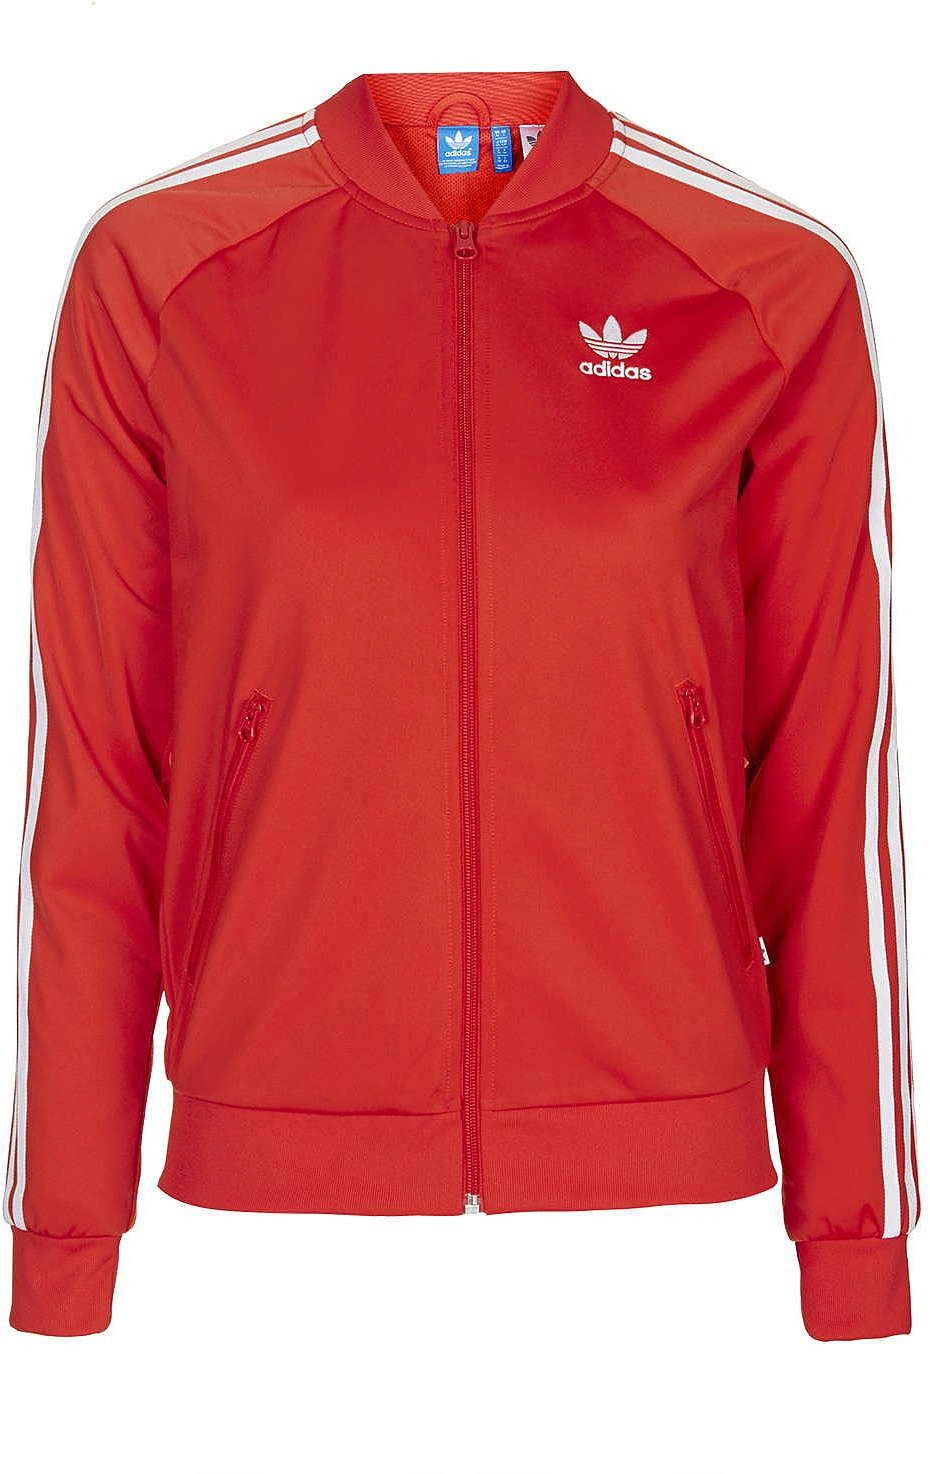 25d91ce32159 Womens poppy super girl track top jacket by adidas originals - red ...